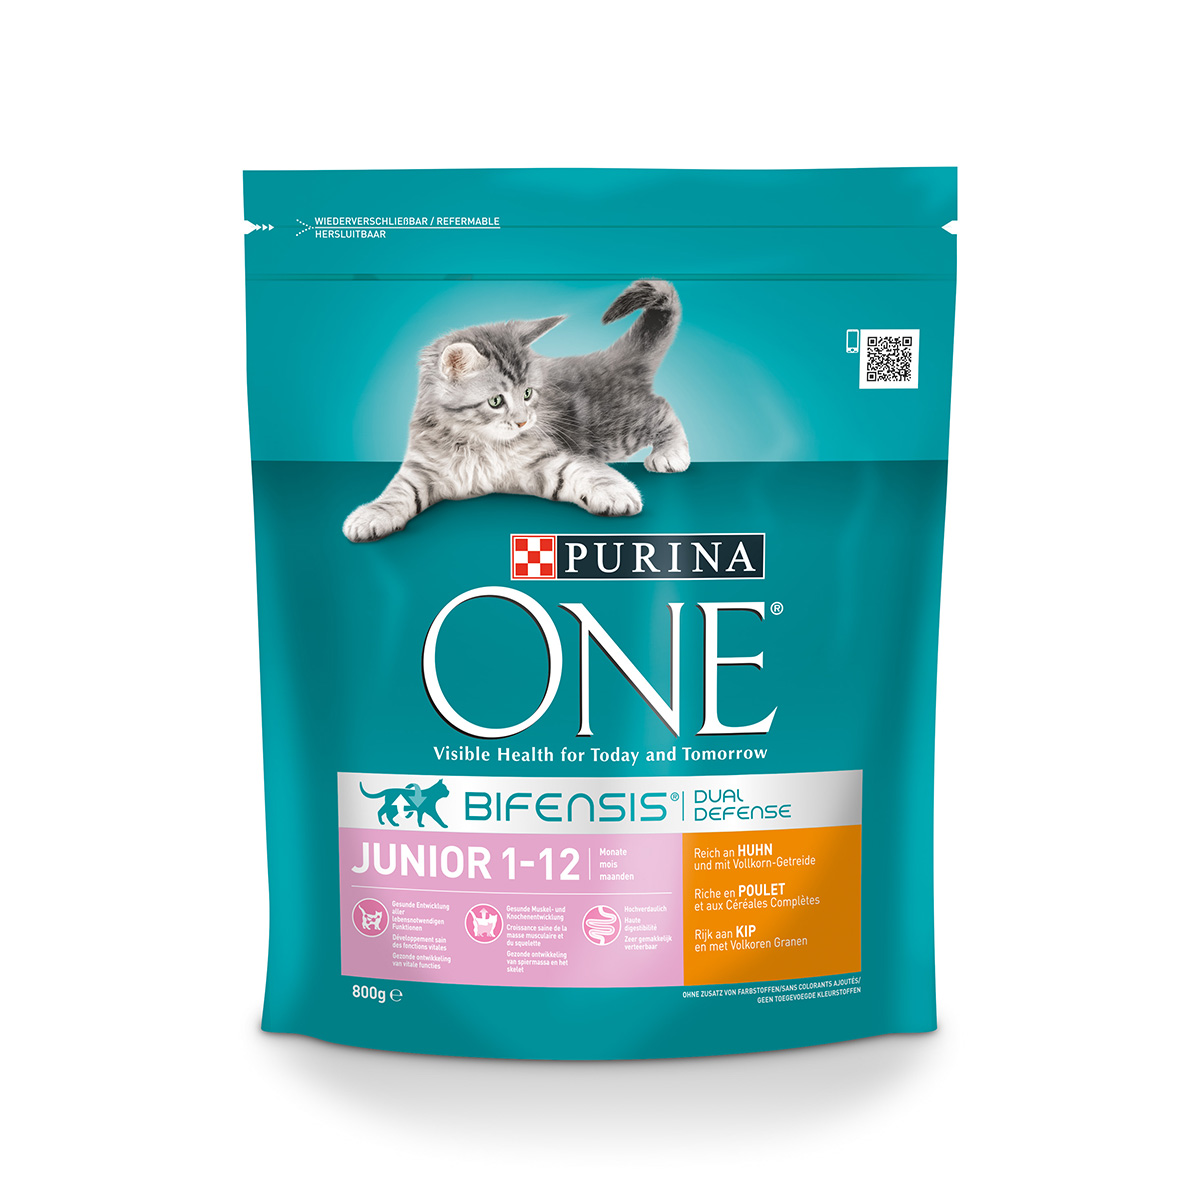 purina one bifensis katzenfutter junior huhn 800g bei zooroyal. Black Bedroom Furniture Sets. Home Design Ideas